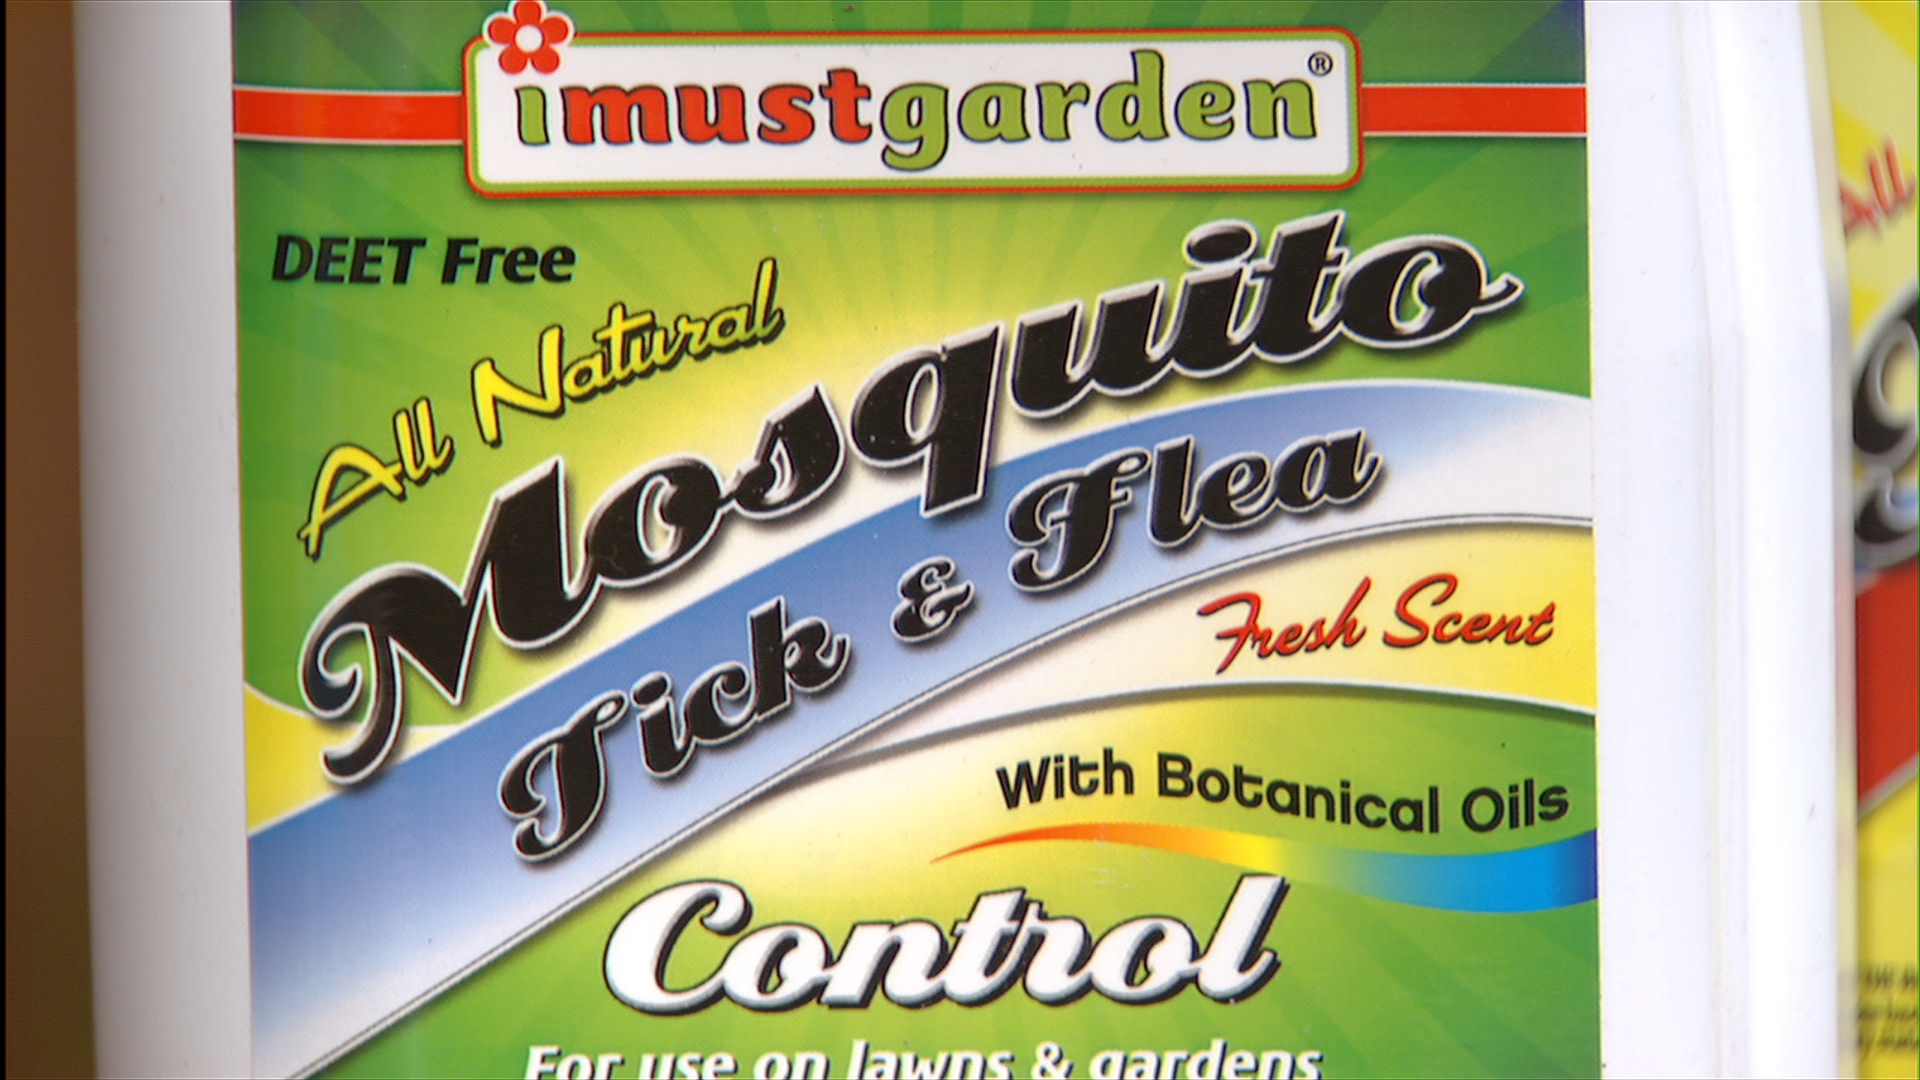 I Must Garden mosquito, tick and flea repellent Trisha Shirey Central Texas Gardener